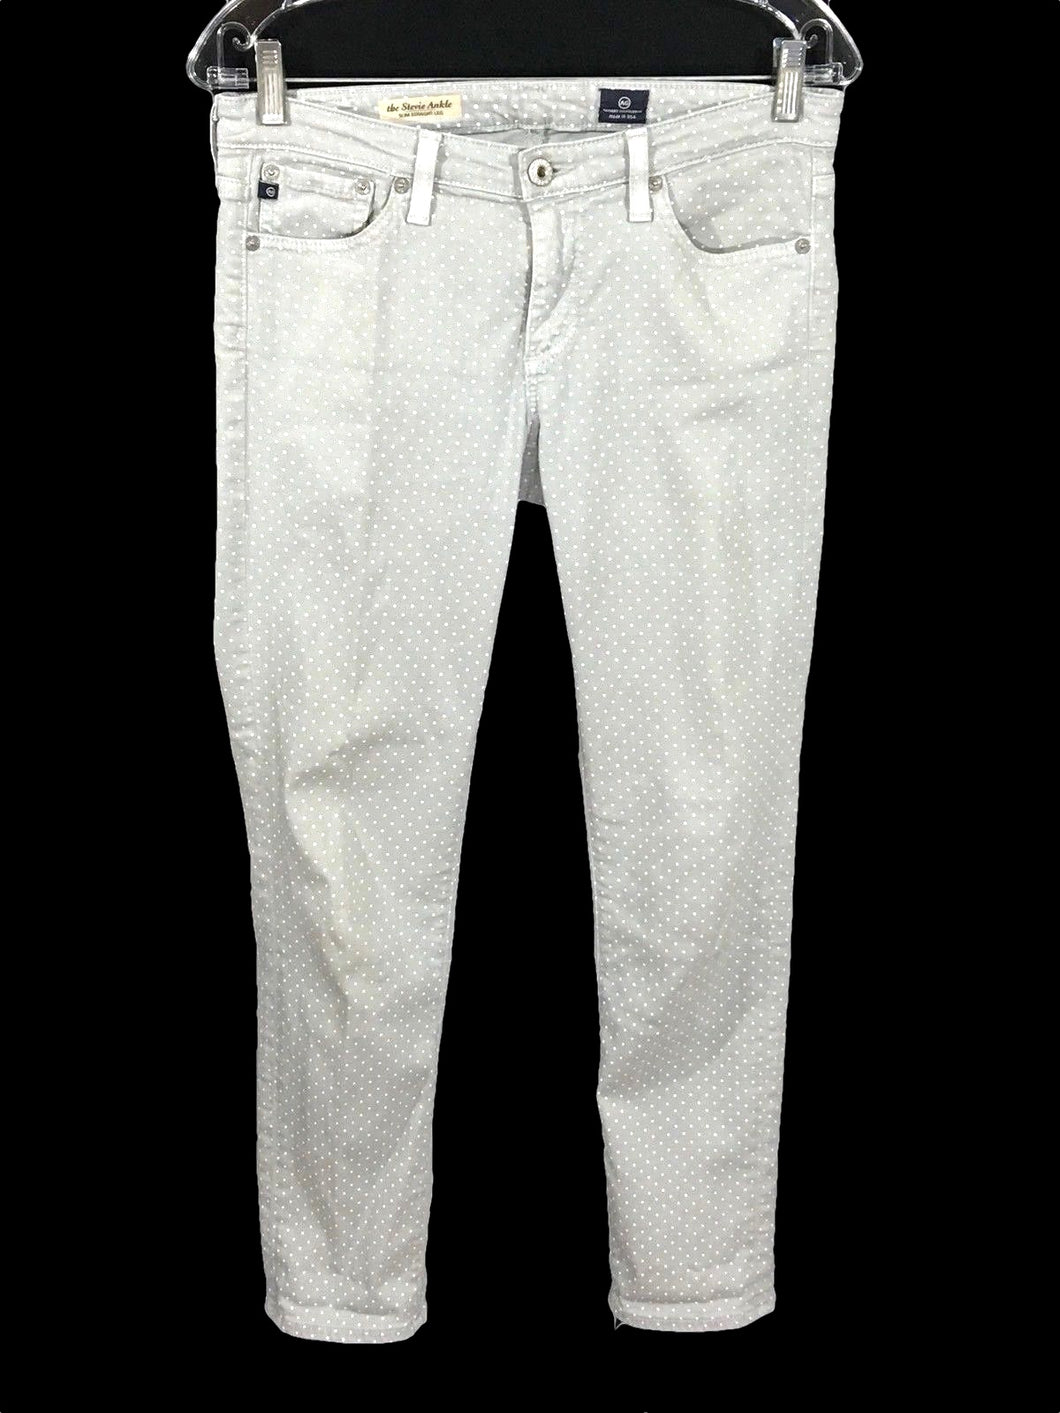 AG Adriano Goldschmied The Stevie Ankle Dots Slim Straight Leg Jeans Womens 27 - Preowned - FunkyCrap Boutique